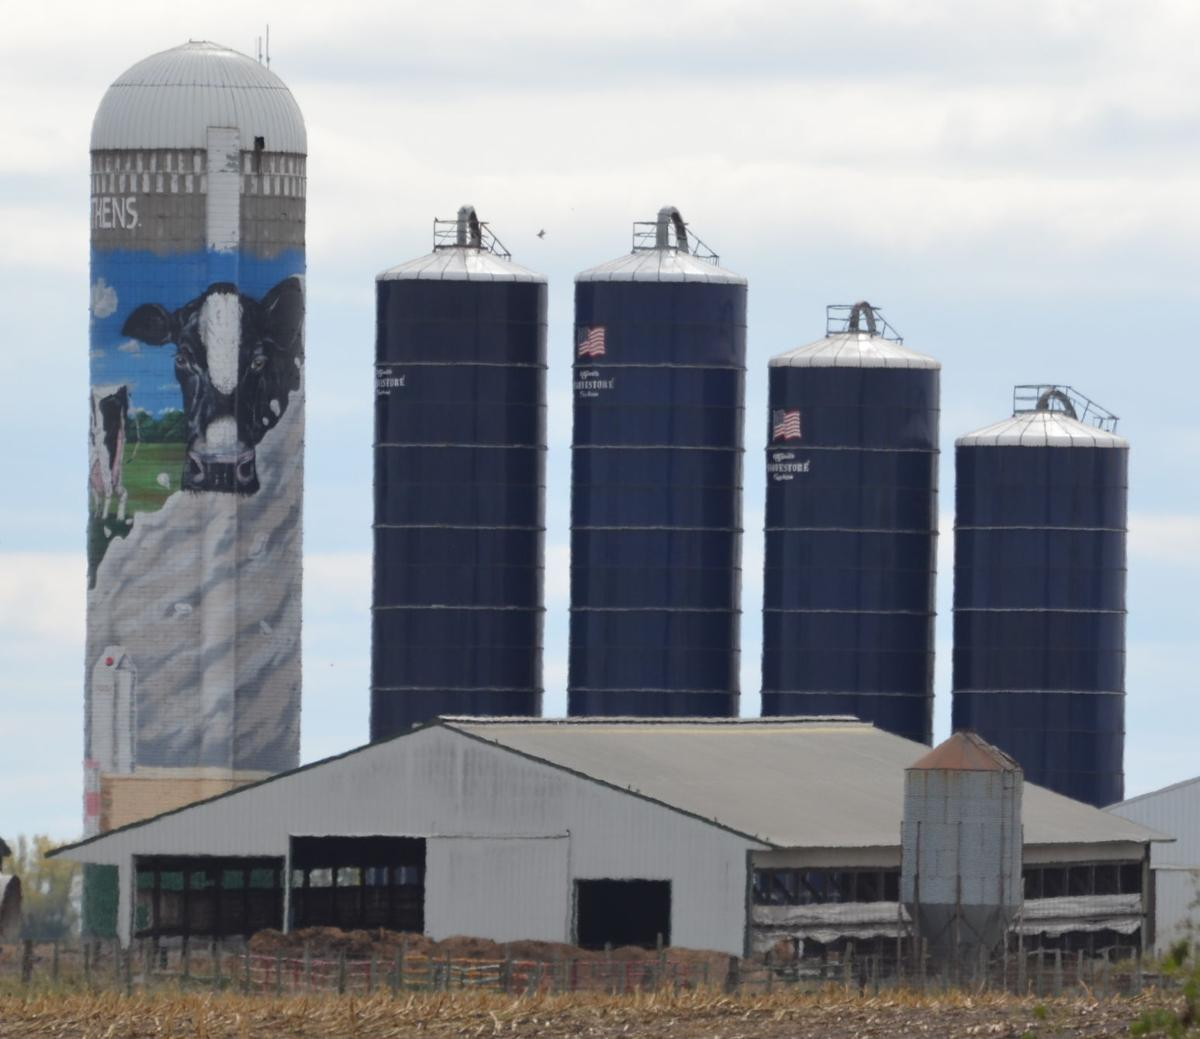 Sykview Dairy mural from Highway 7